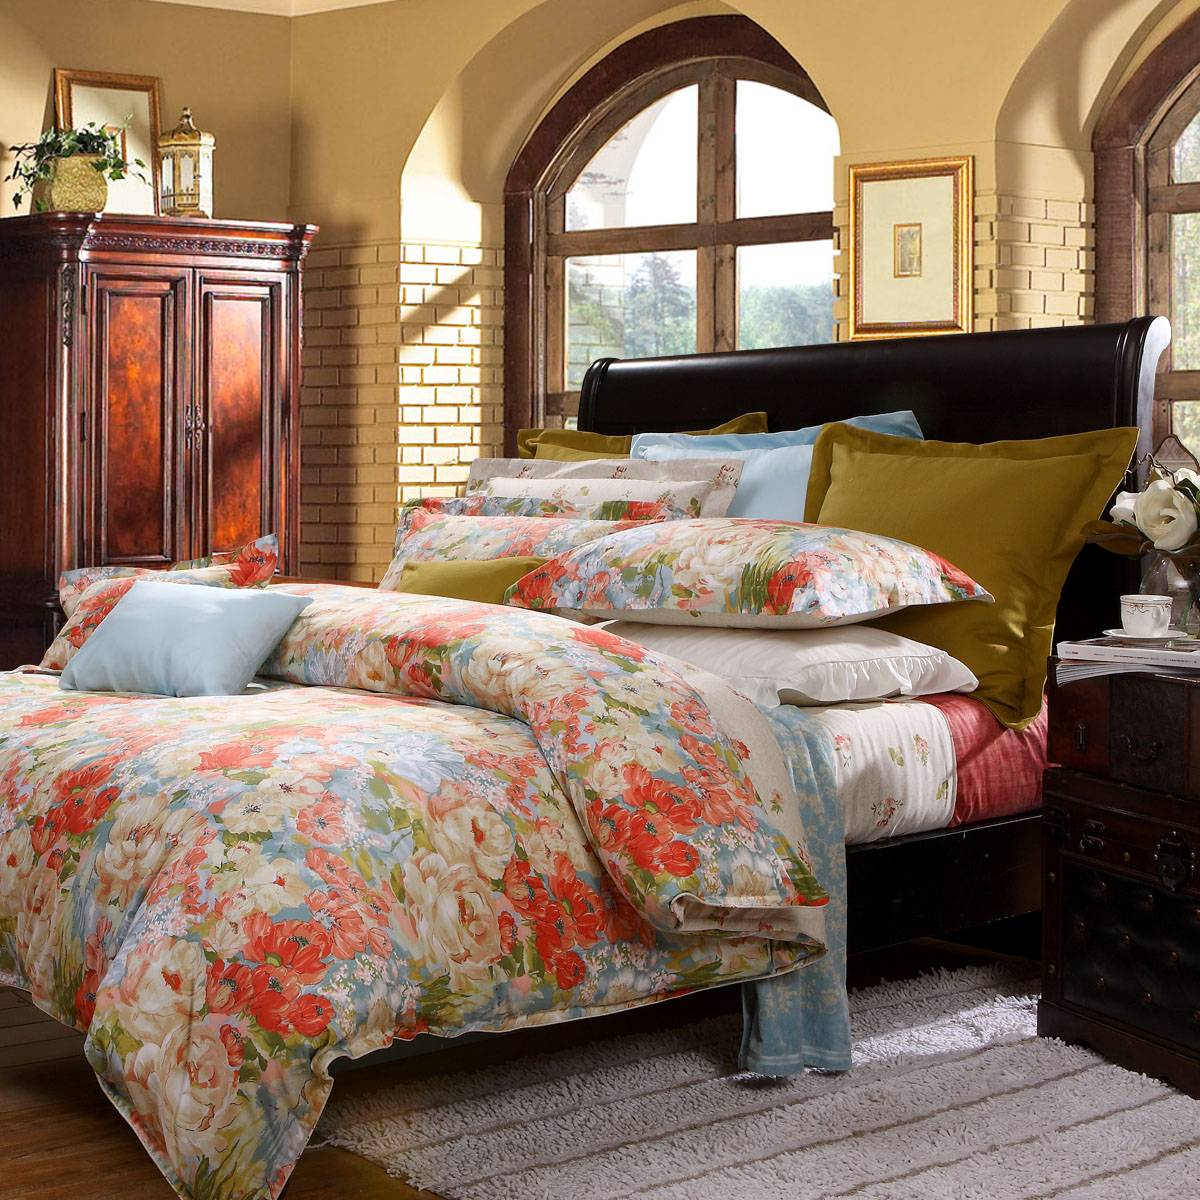 Fuanna Warm Fall 3 Pieces Set Cotton Printed Queen Duvet Cover and Pillow Shams